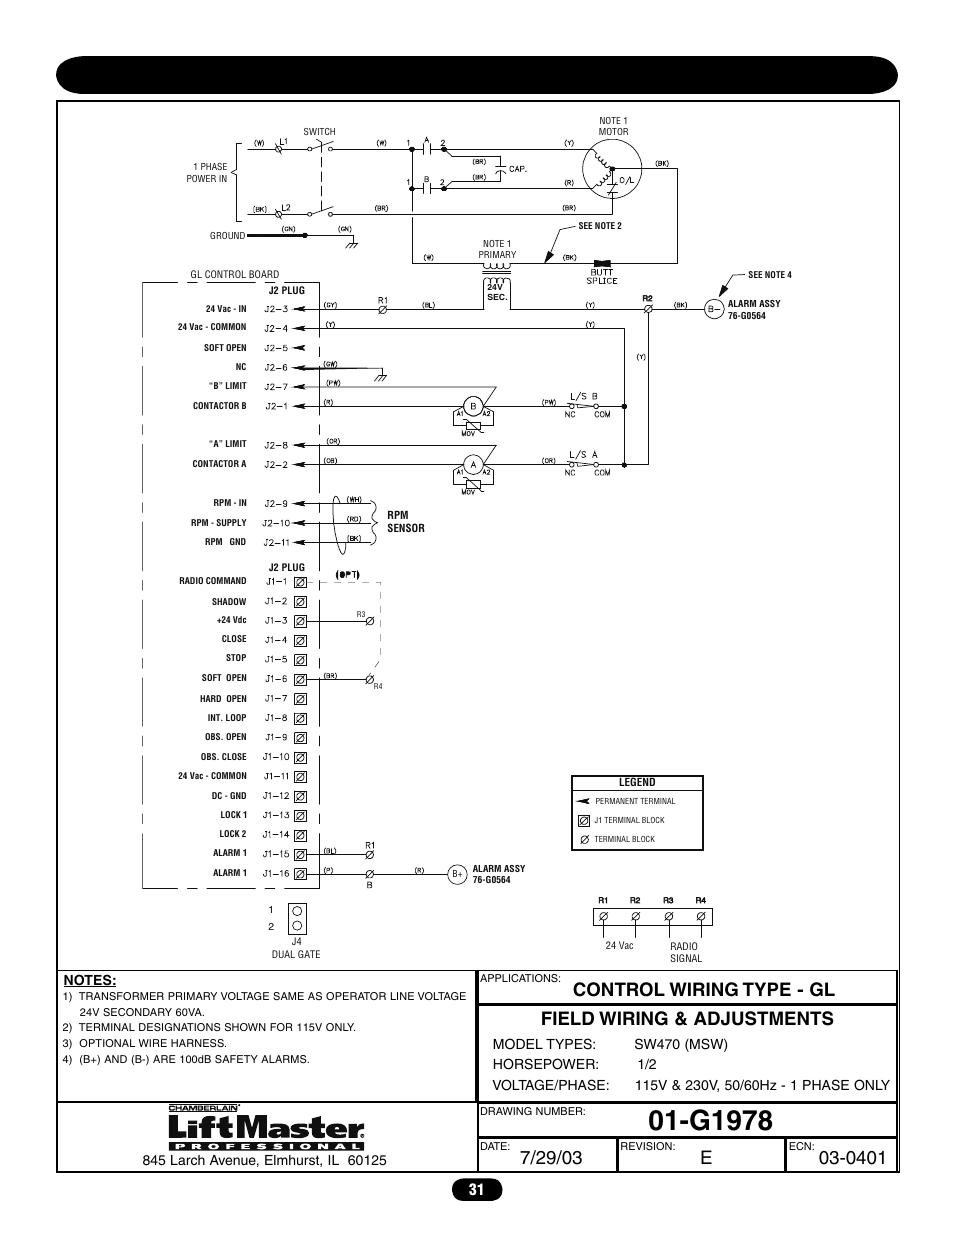 hight resolution of single phase wiring diagram sw470 g1978 chamberlain liftmaster lift master wiring diagram single phase